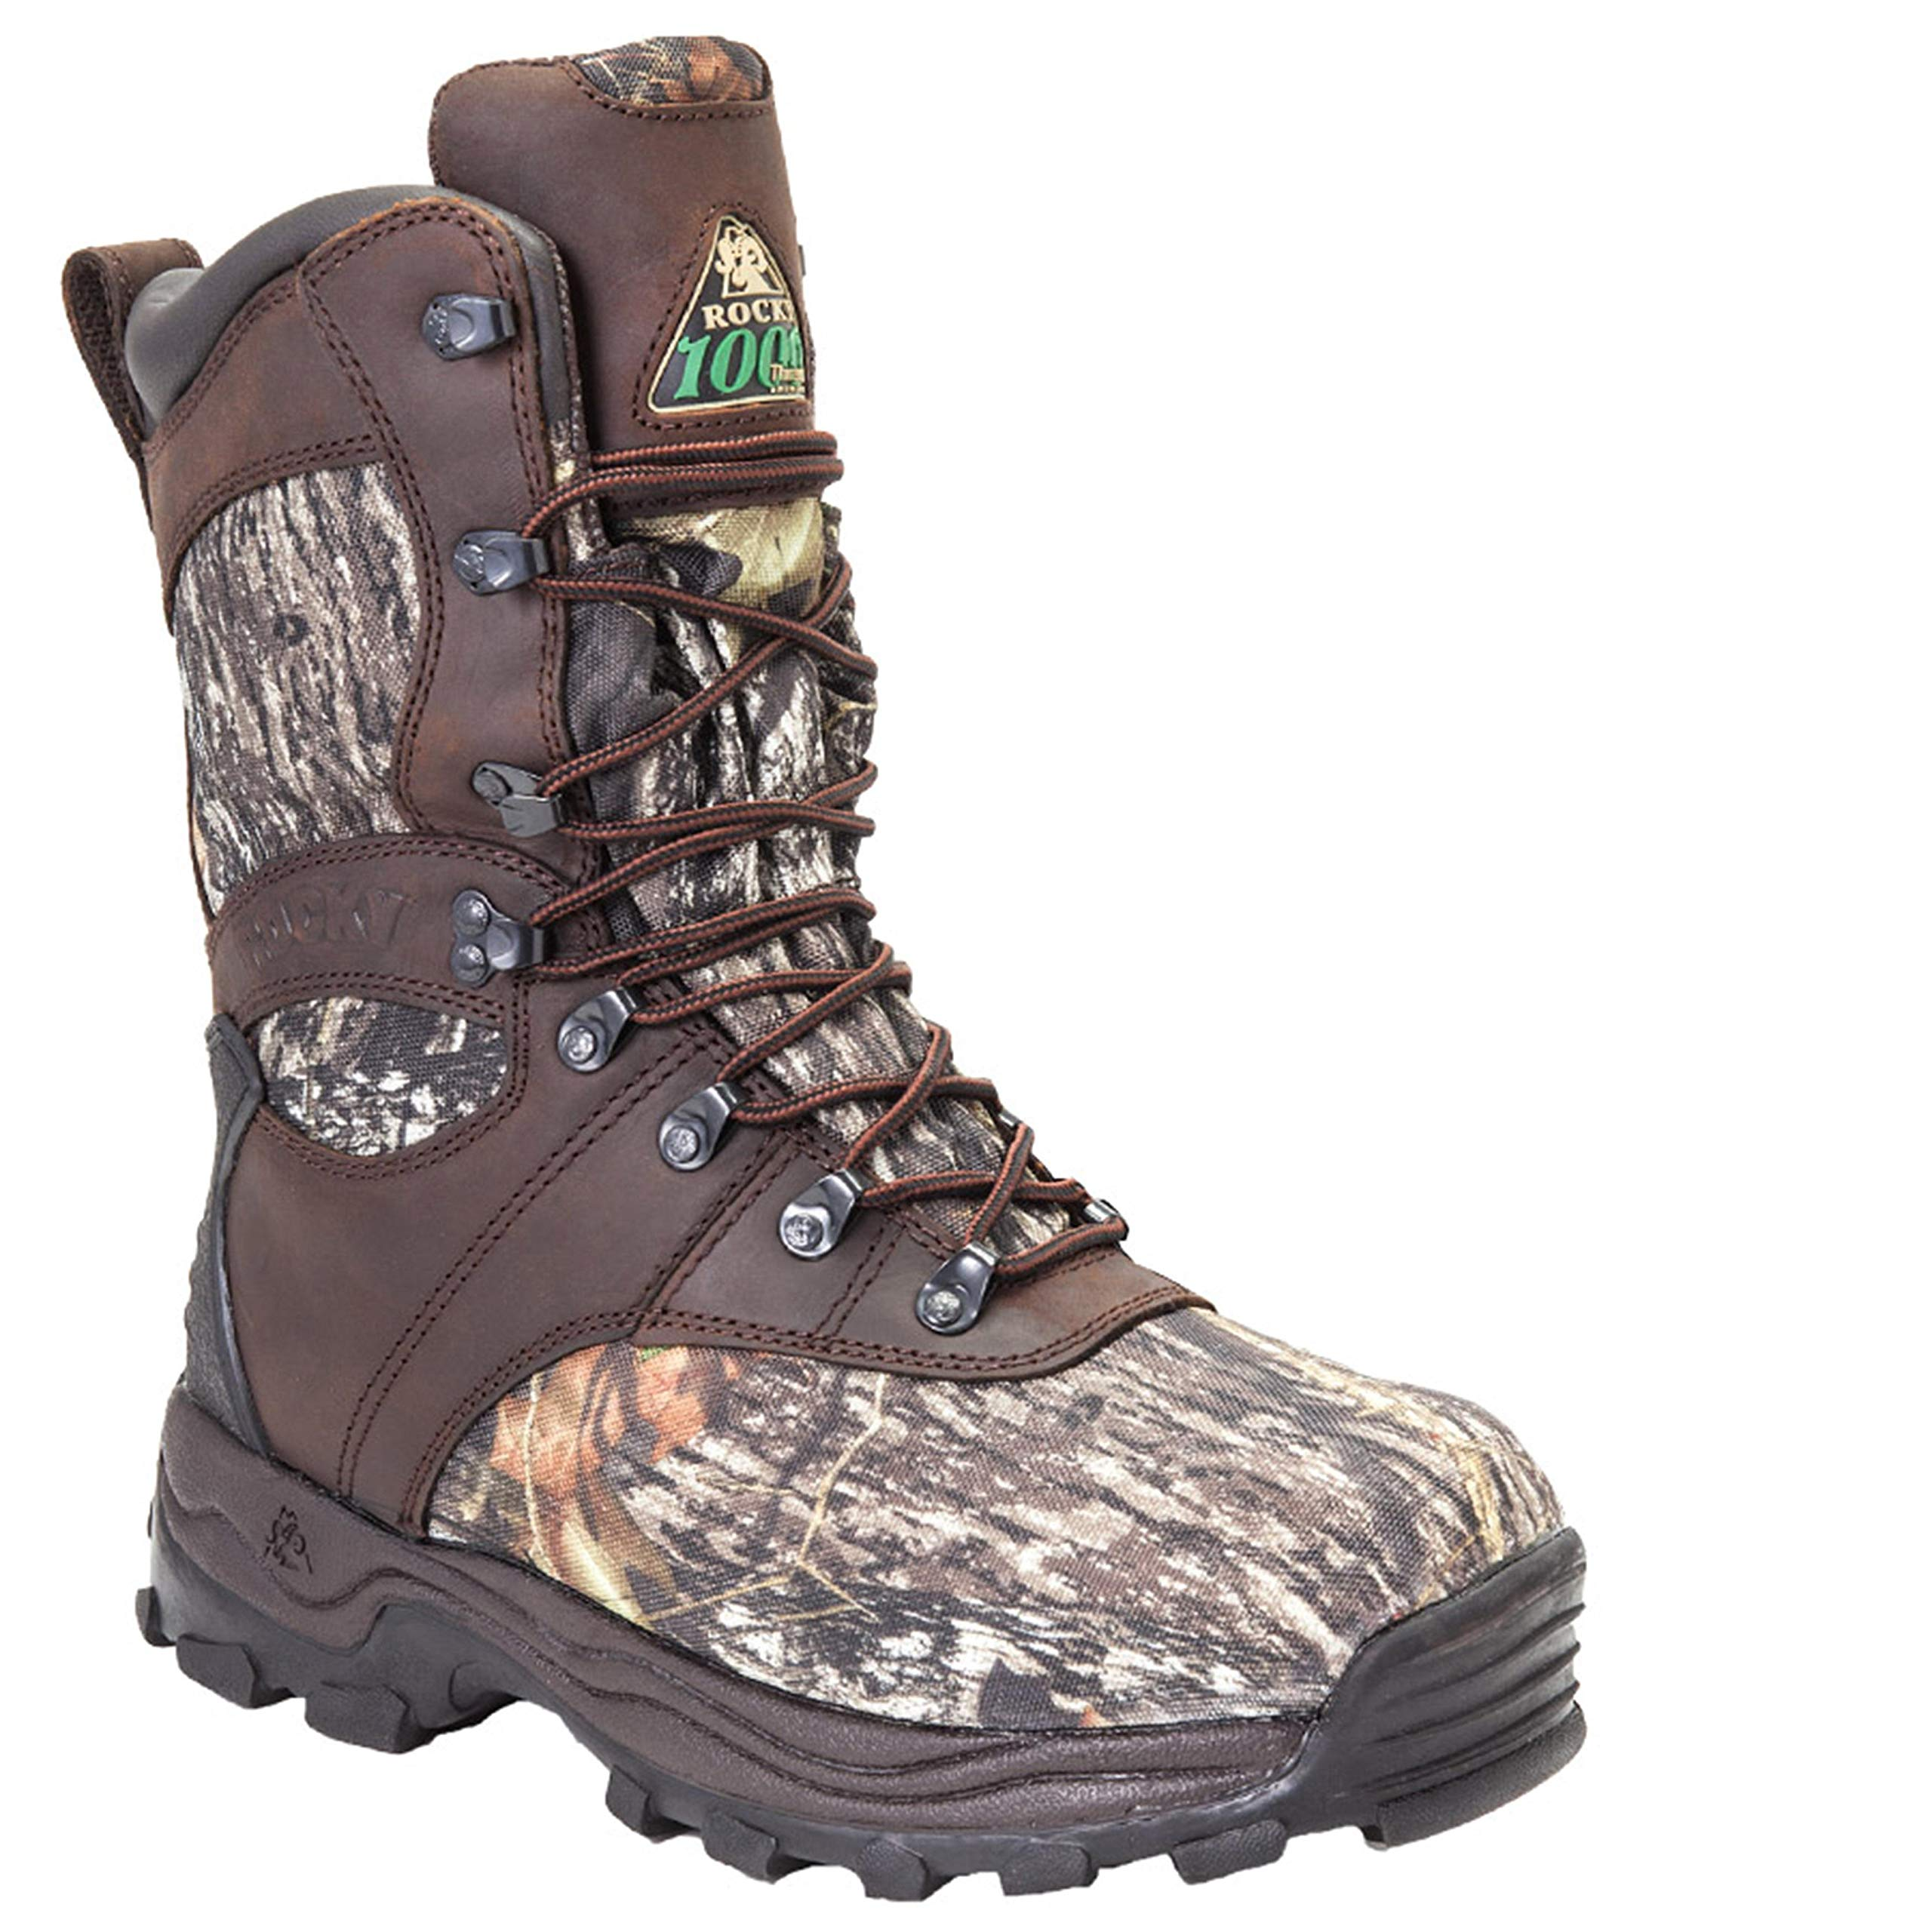 Rocky Men's Sport Utility Pro Hunting Boot,Mossy Oak,11.5 W US by ROCKY